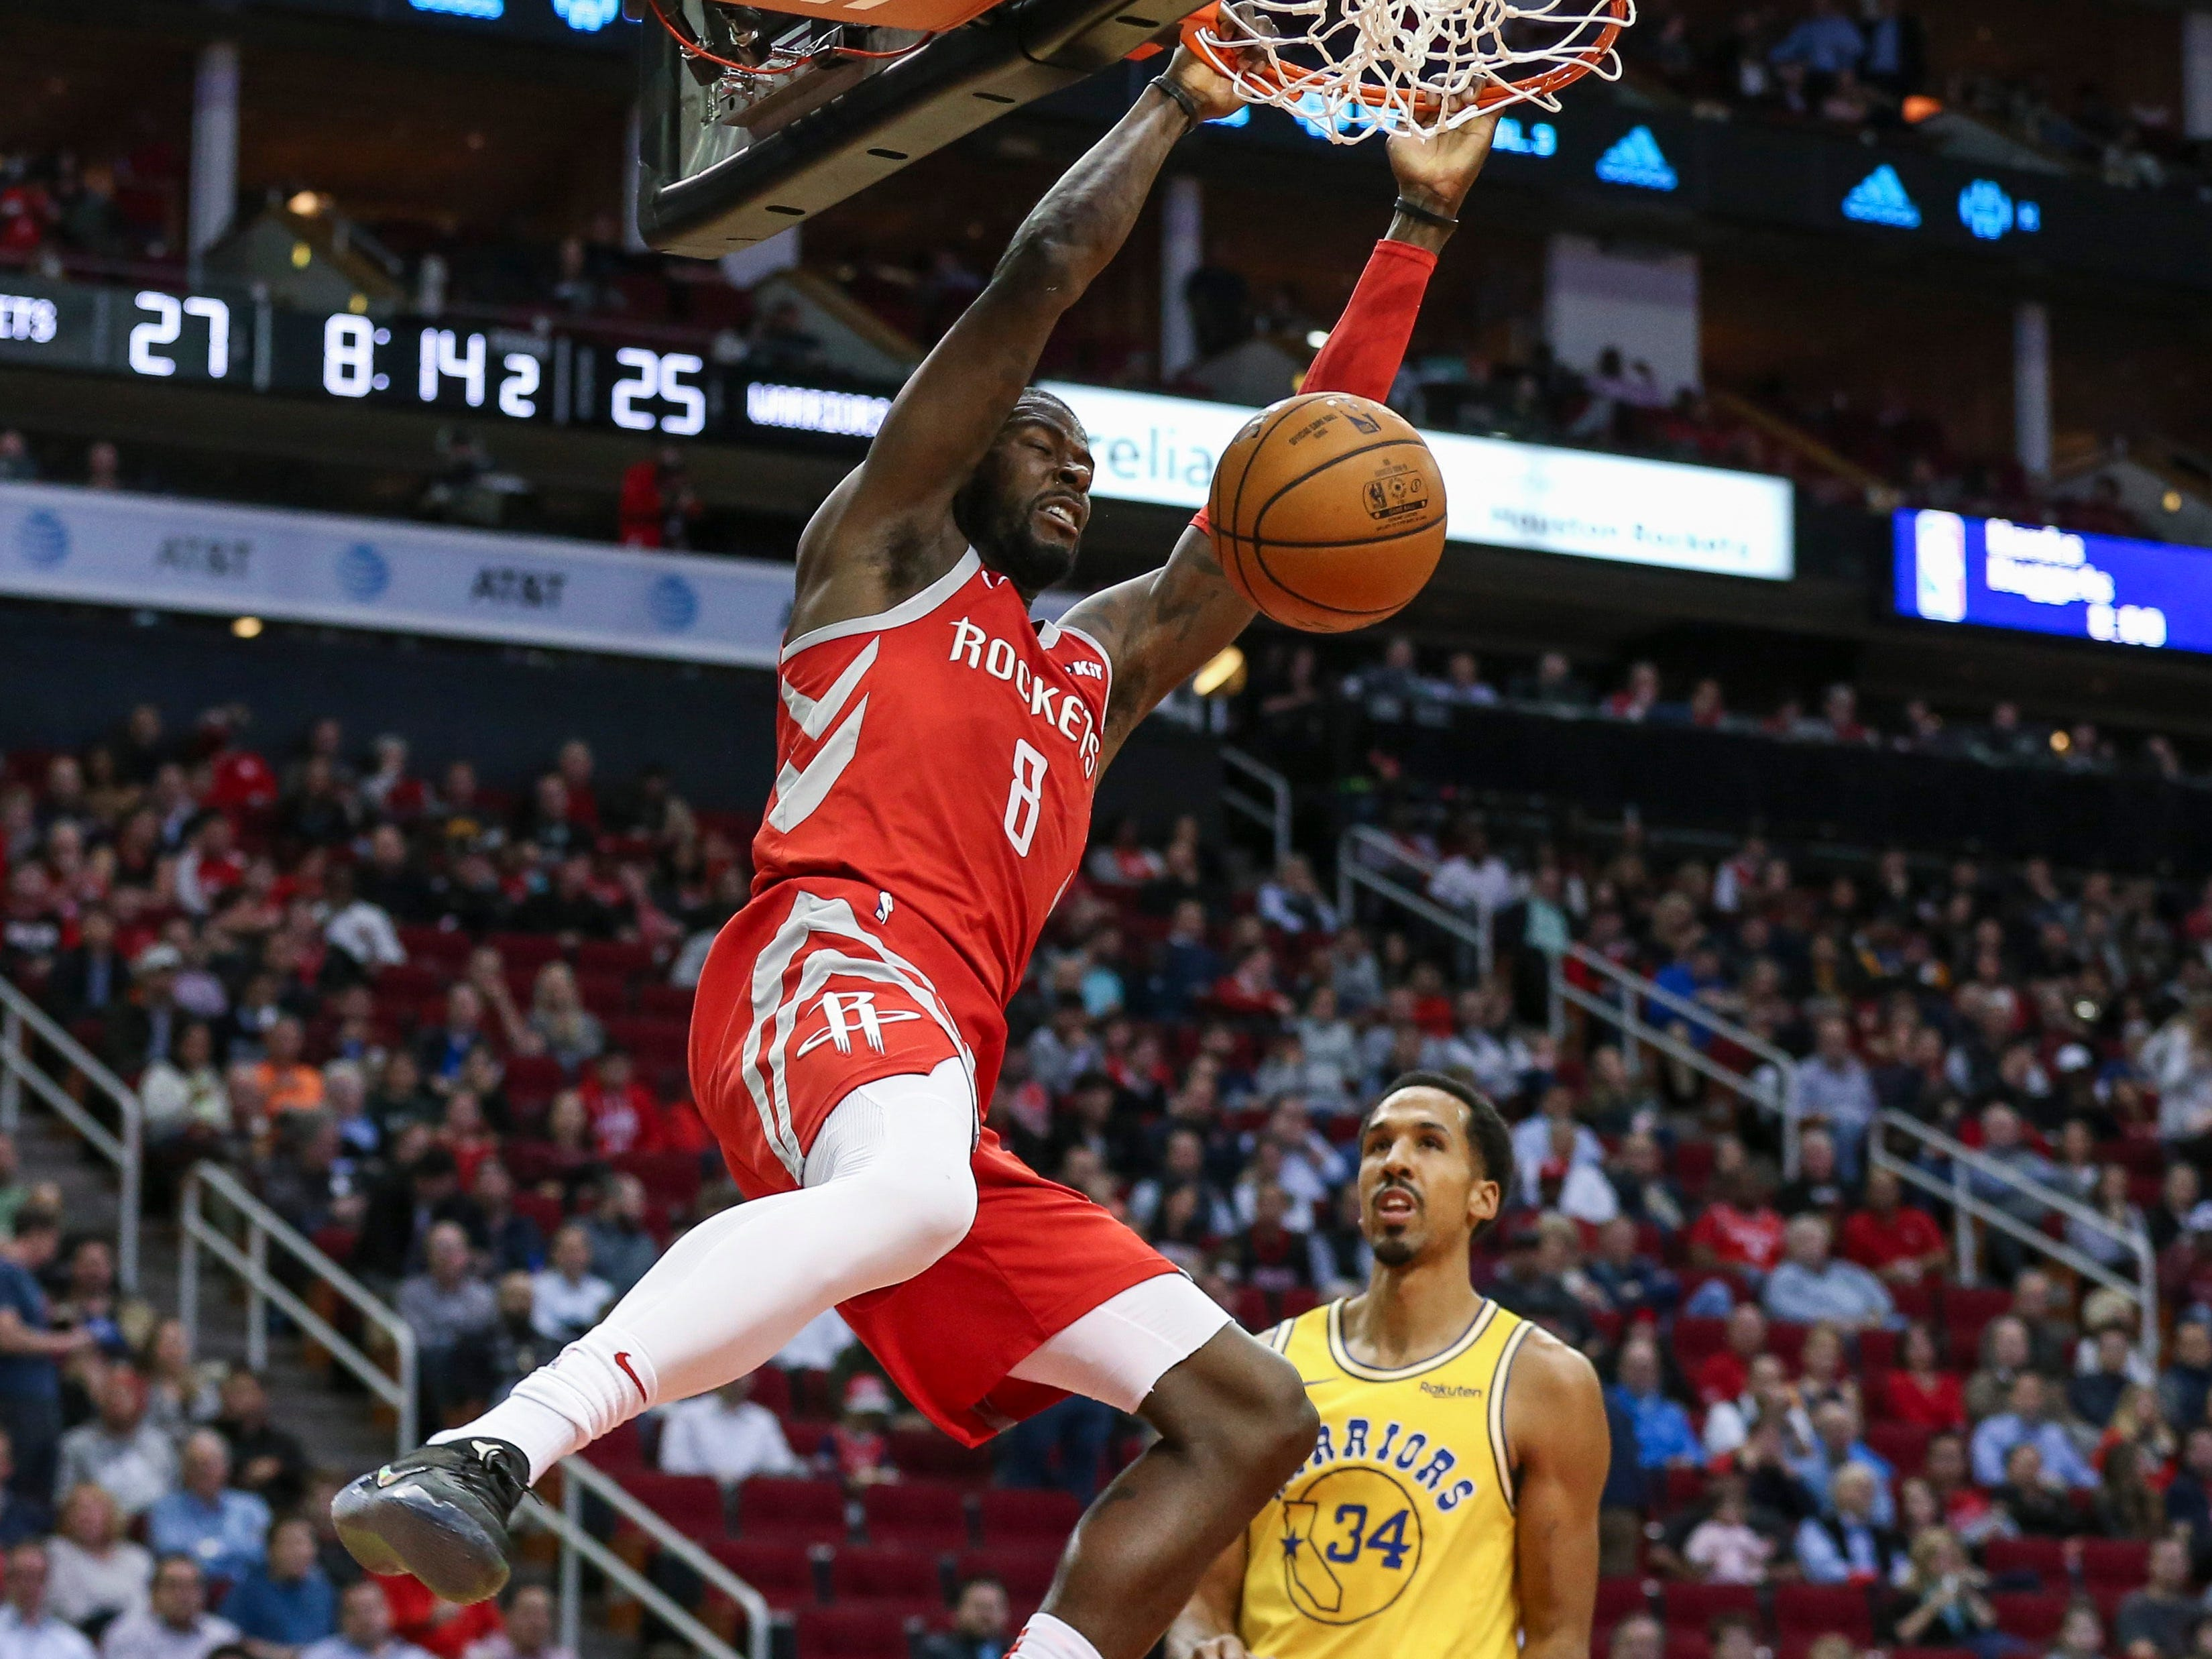 Nov. 15: Rockets forward James Ennis finishes off a two-handed flush during the first half against the Warriors in Houston.